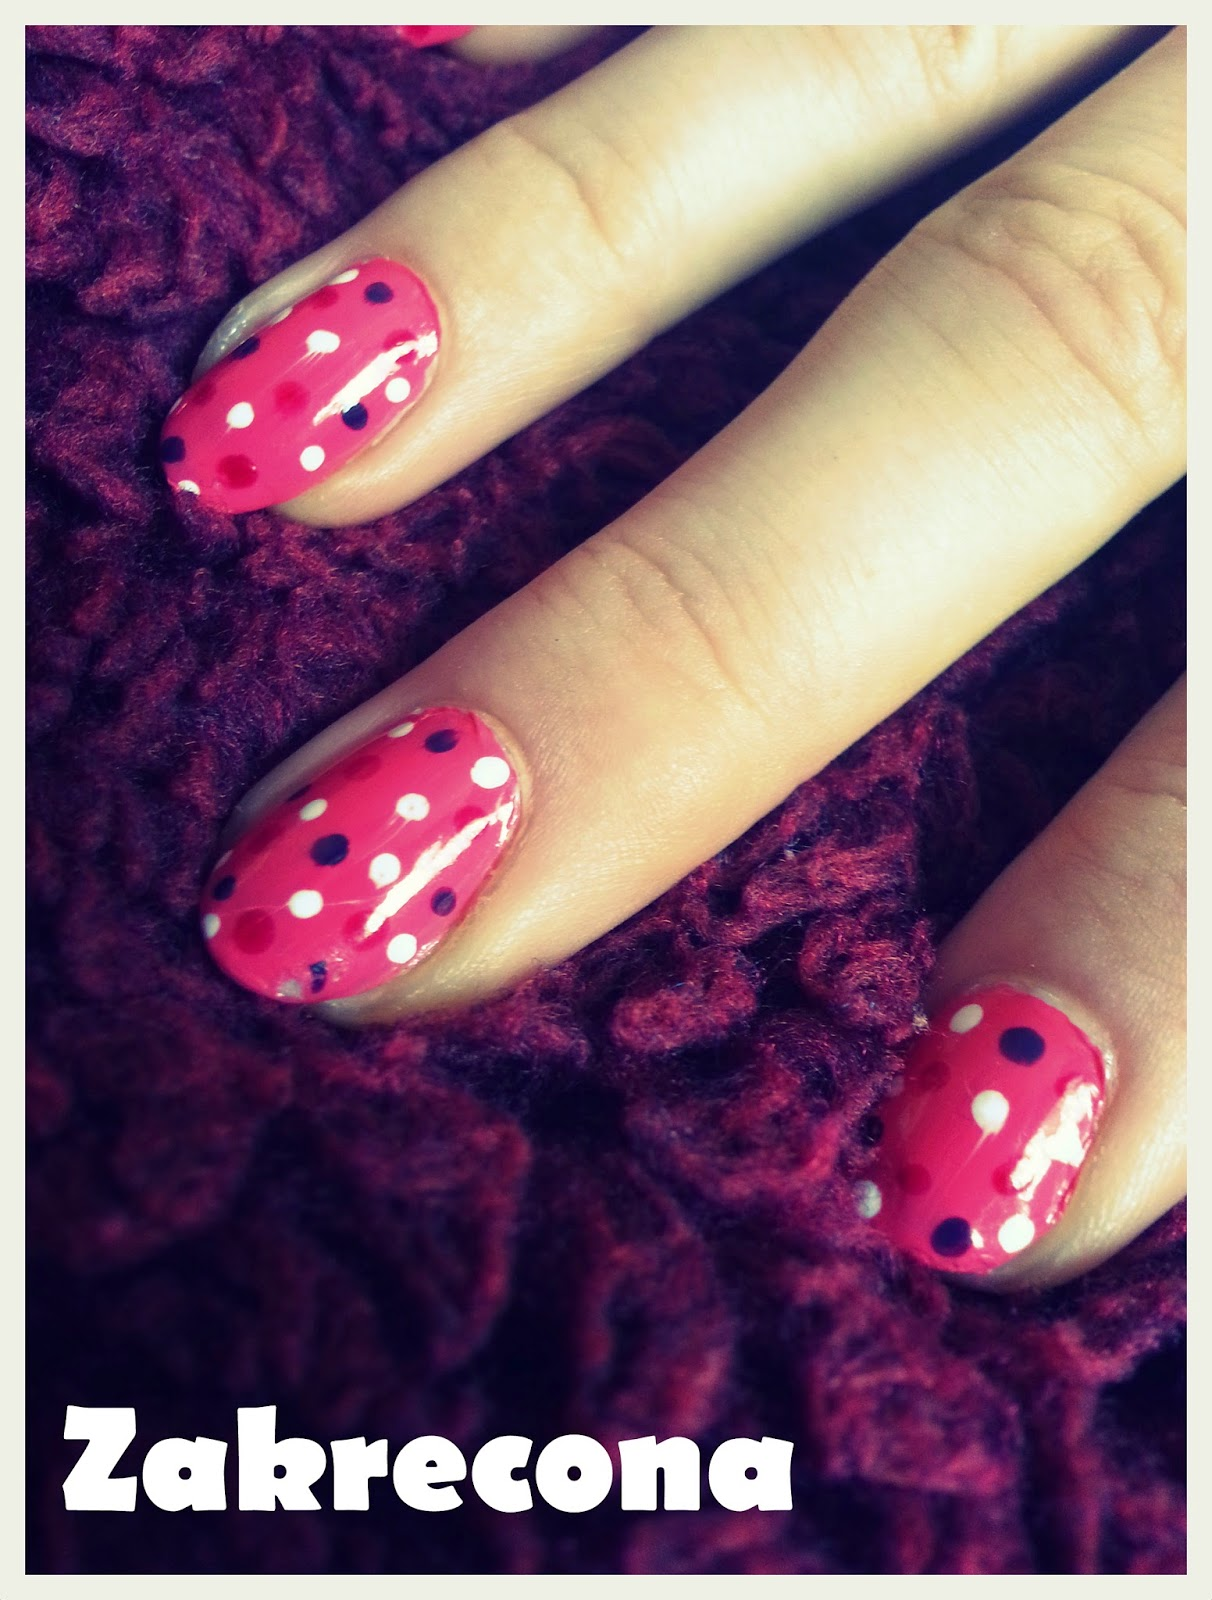 Dotty's nails